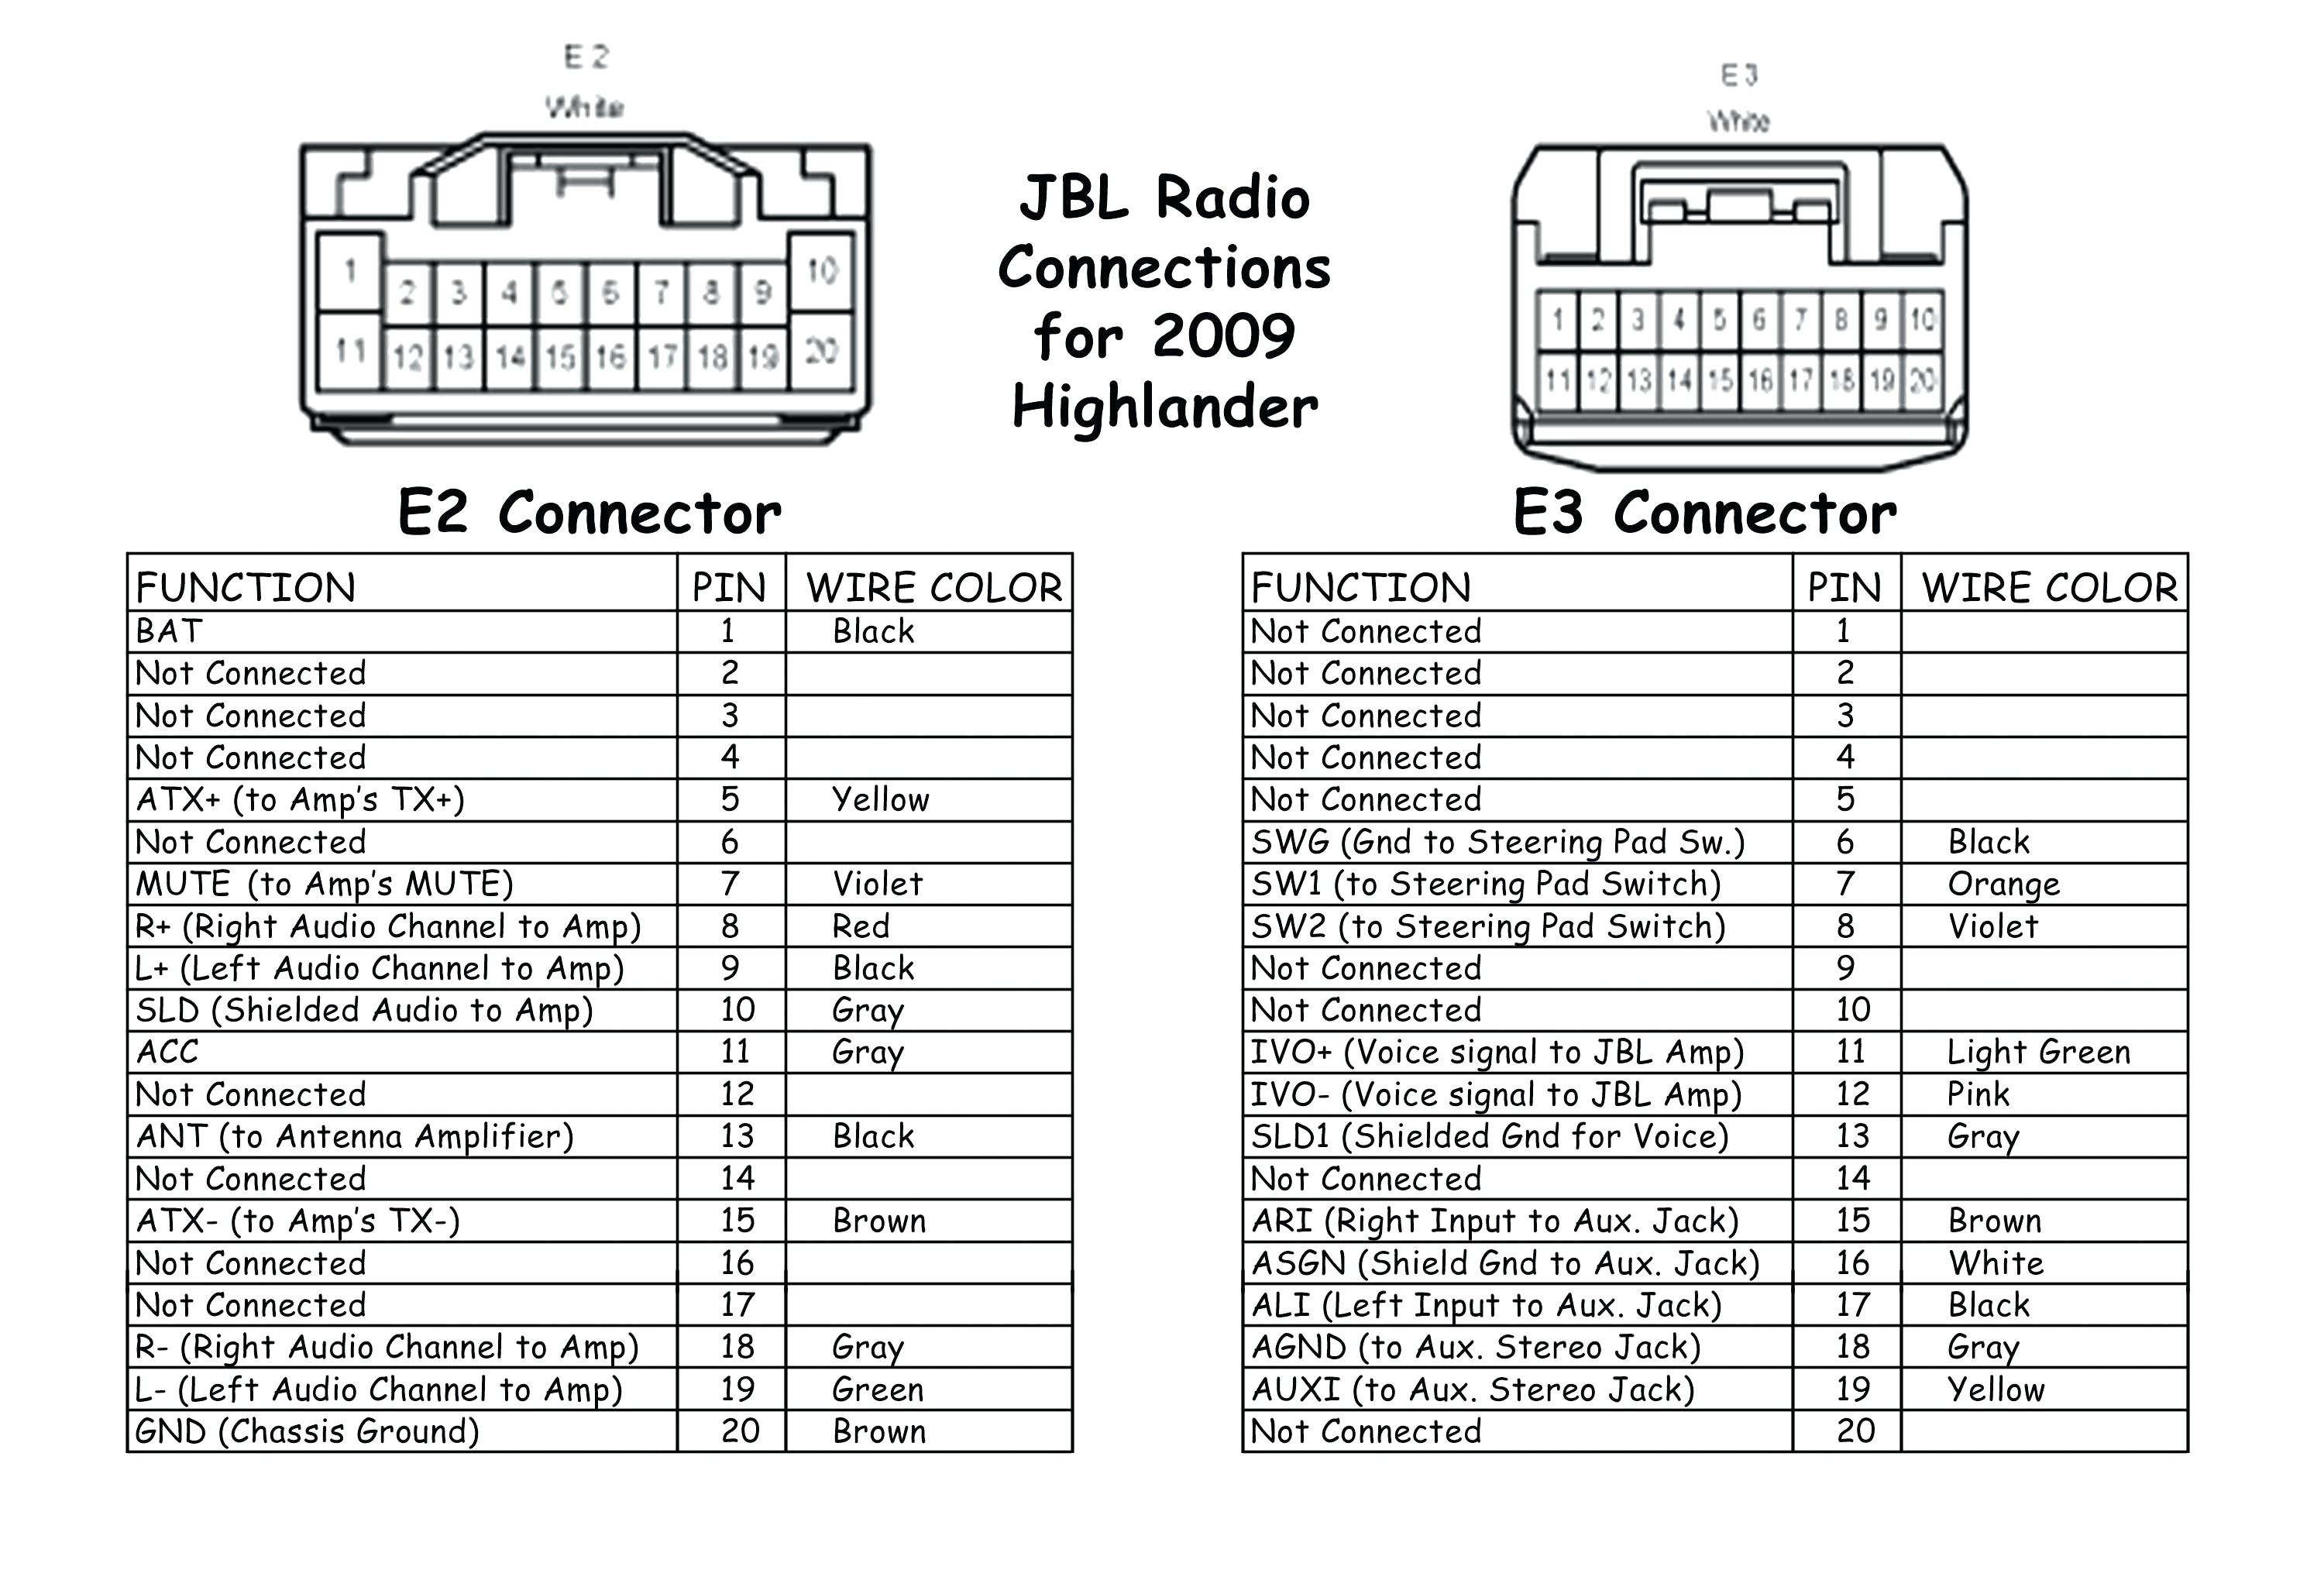 Best Of 1999 Toyota Camry Radio Wiring Diagram In 2020 Pioneer Car Stereo Car Stereo Electrical Wiring Diagram